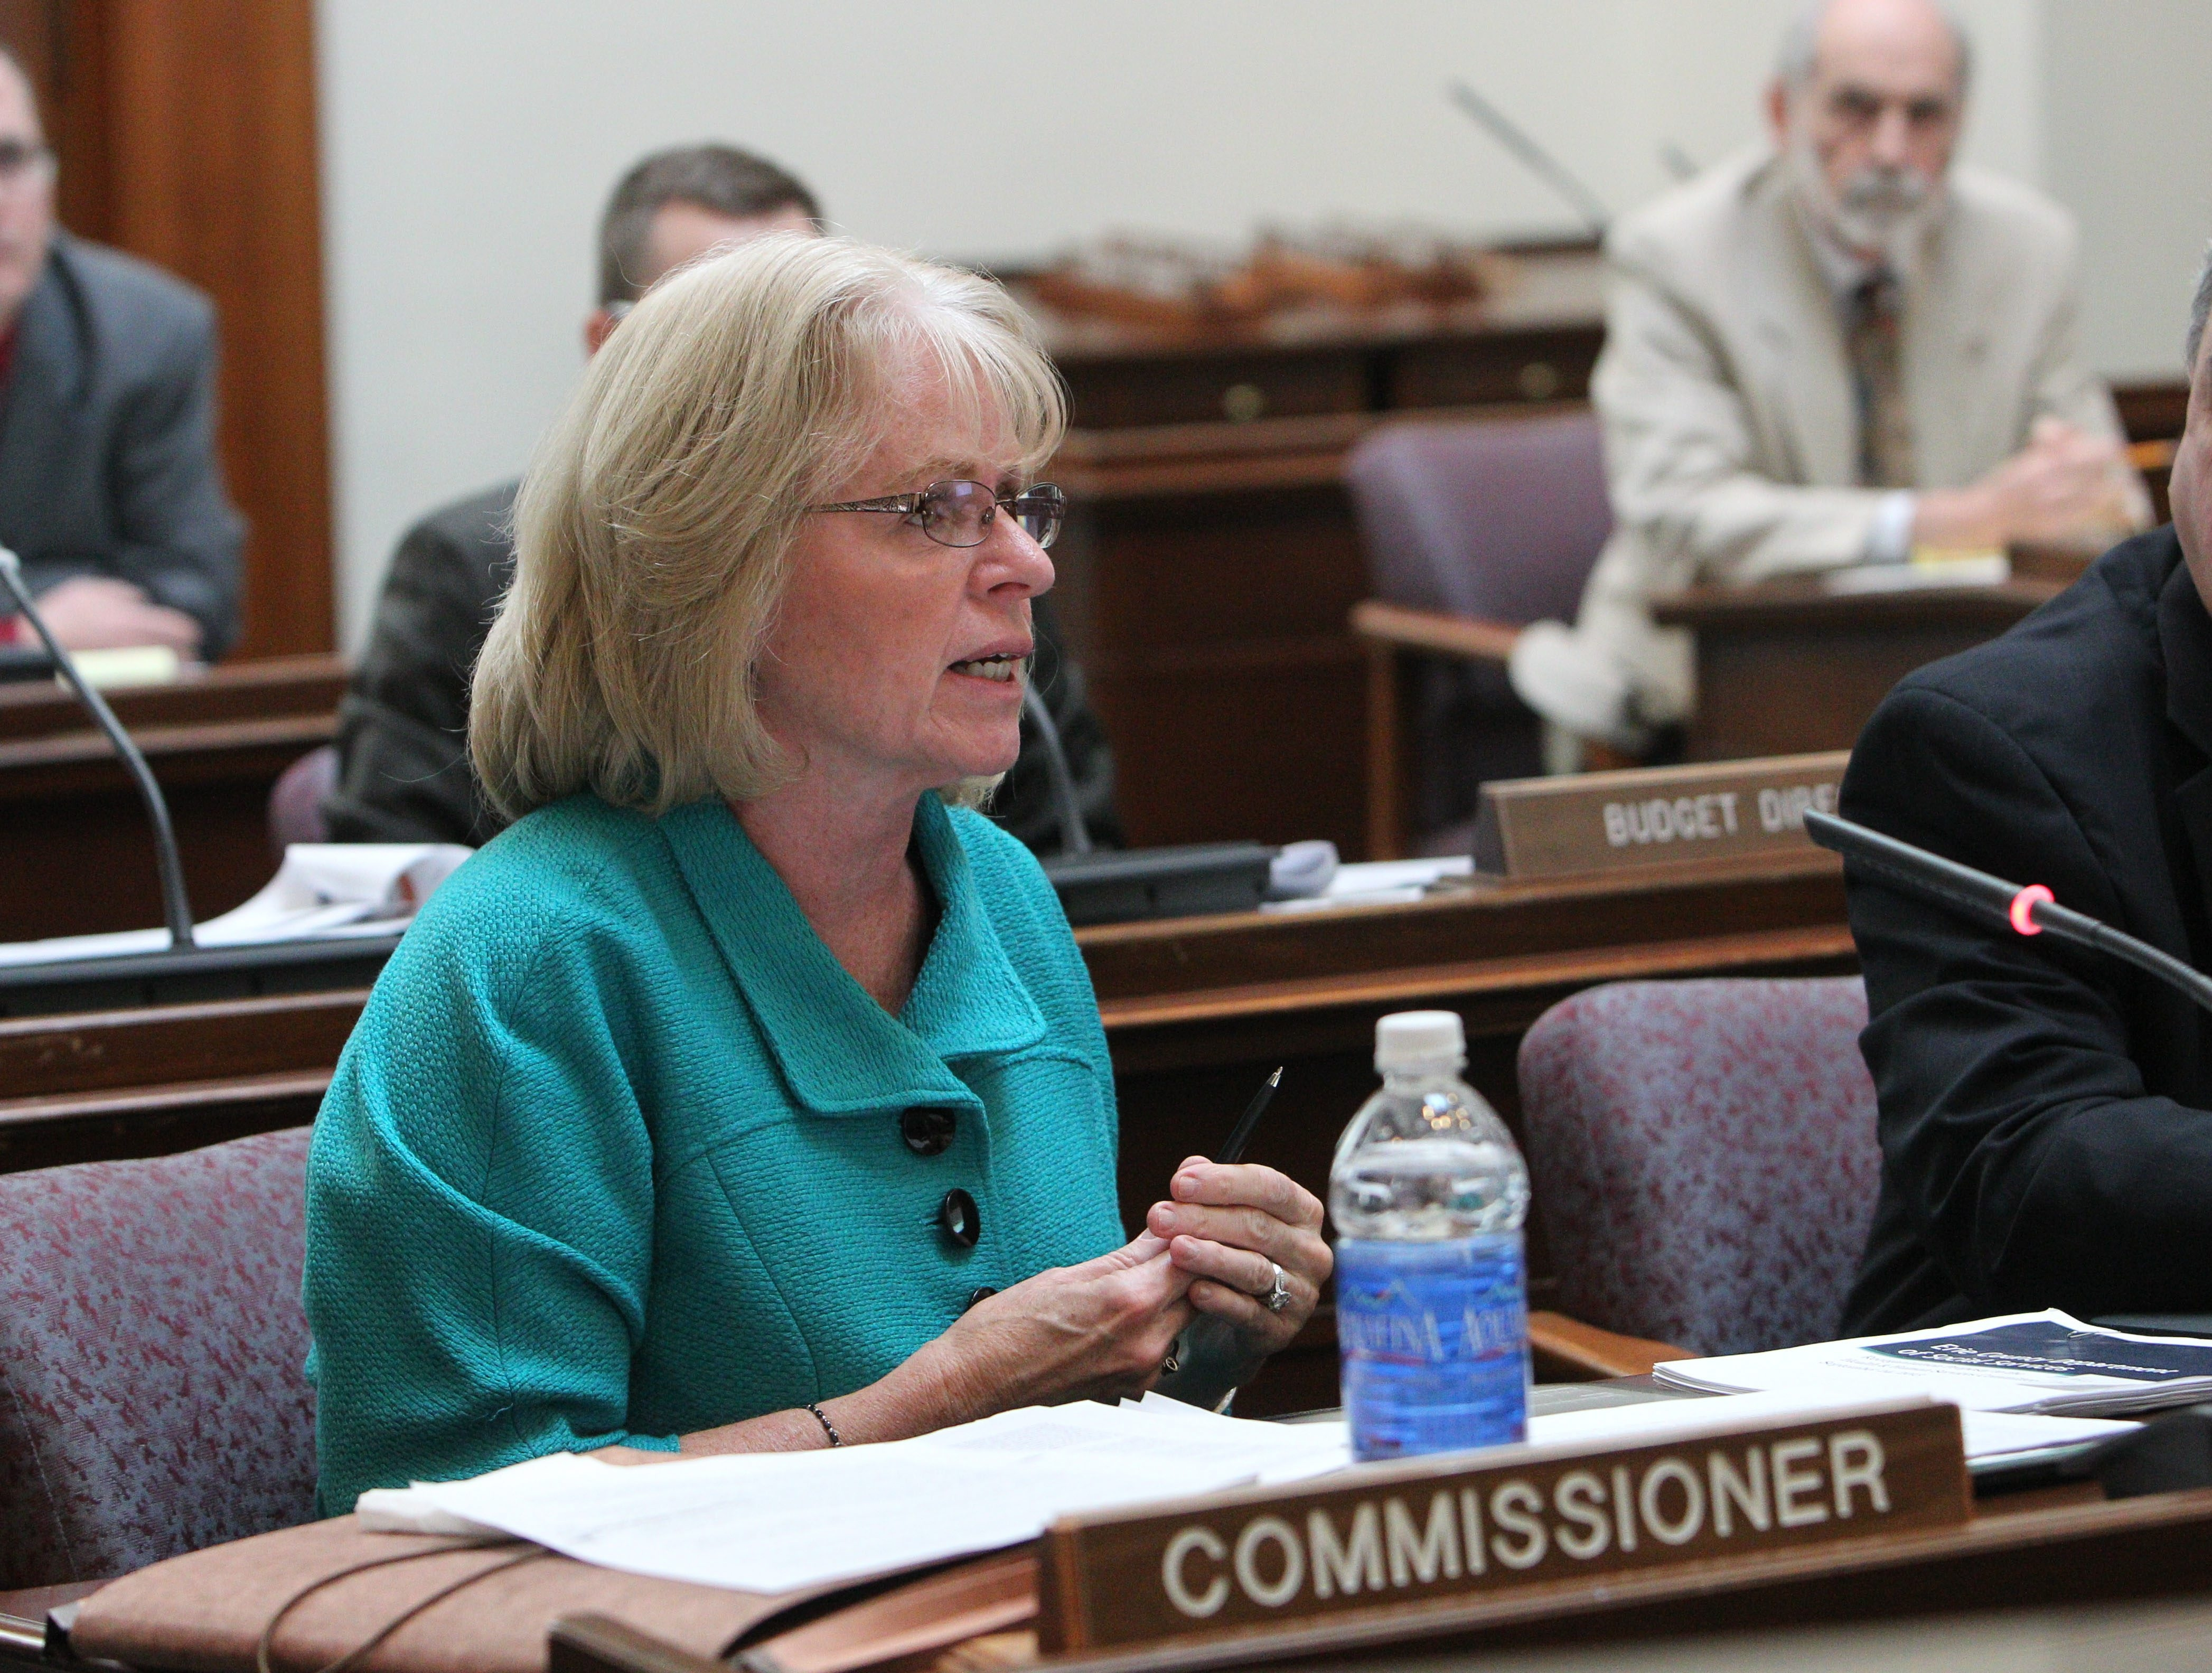 Carol M. Dankert-Maurer, Commissioner for the Department of Social Services, wants to add 37 new workers to Child Protective Services. That may be necessary, but lawmakers need more information before acting.